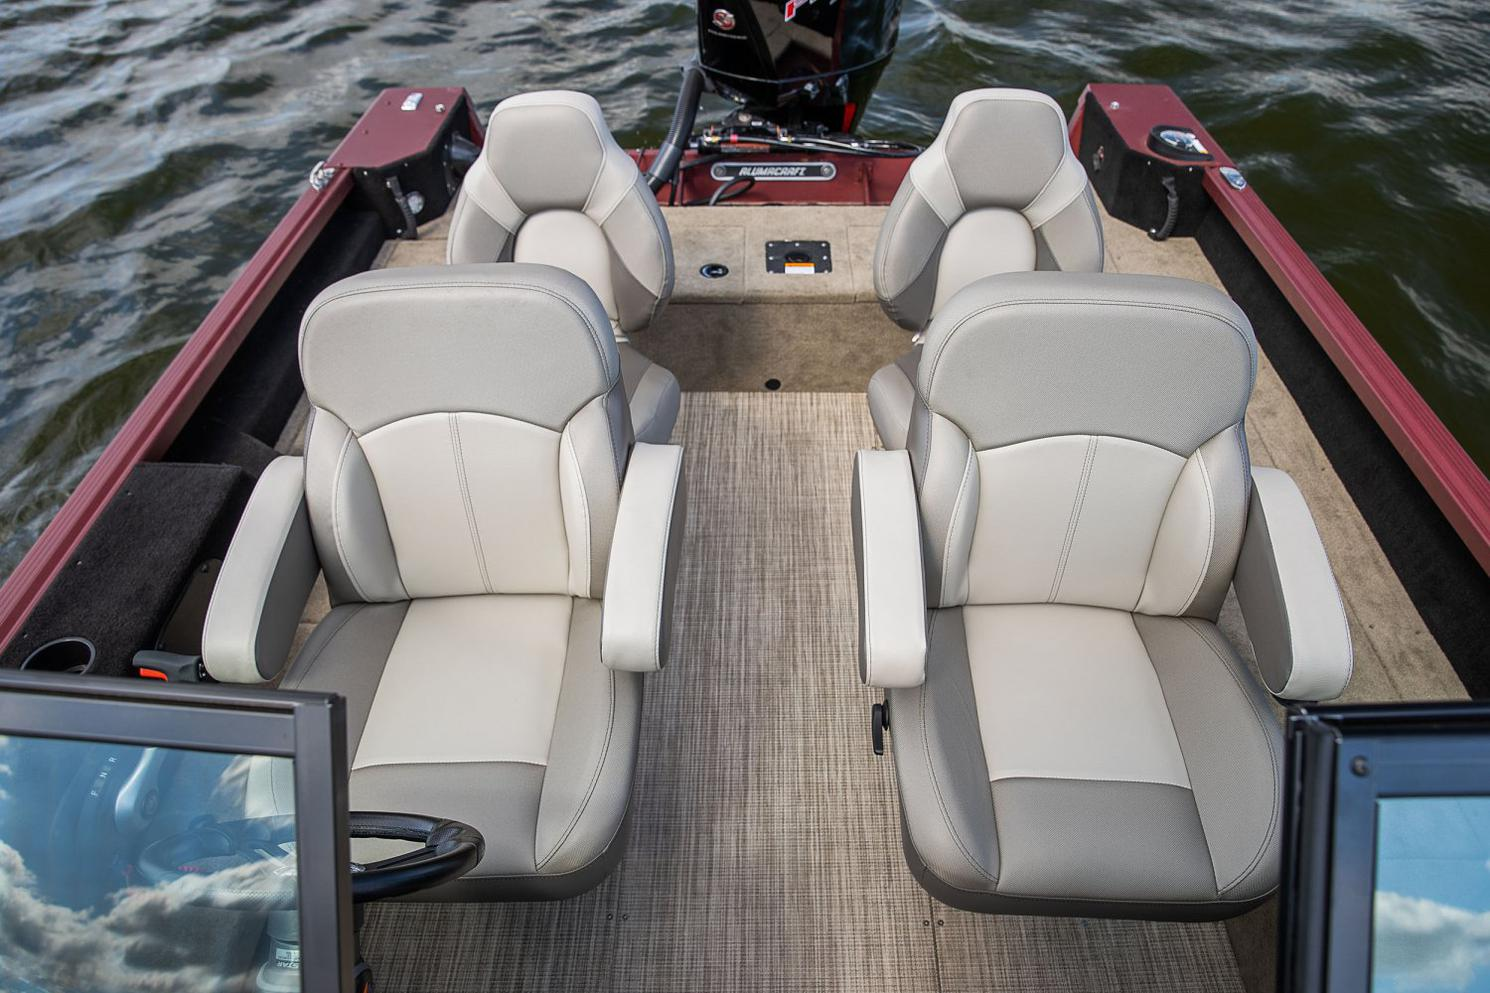 2021 Alumacraft boat for sale, model of the boat is Alumacraft Competitor 205 Sport & Image # 6 of 8